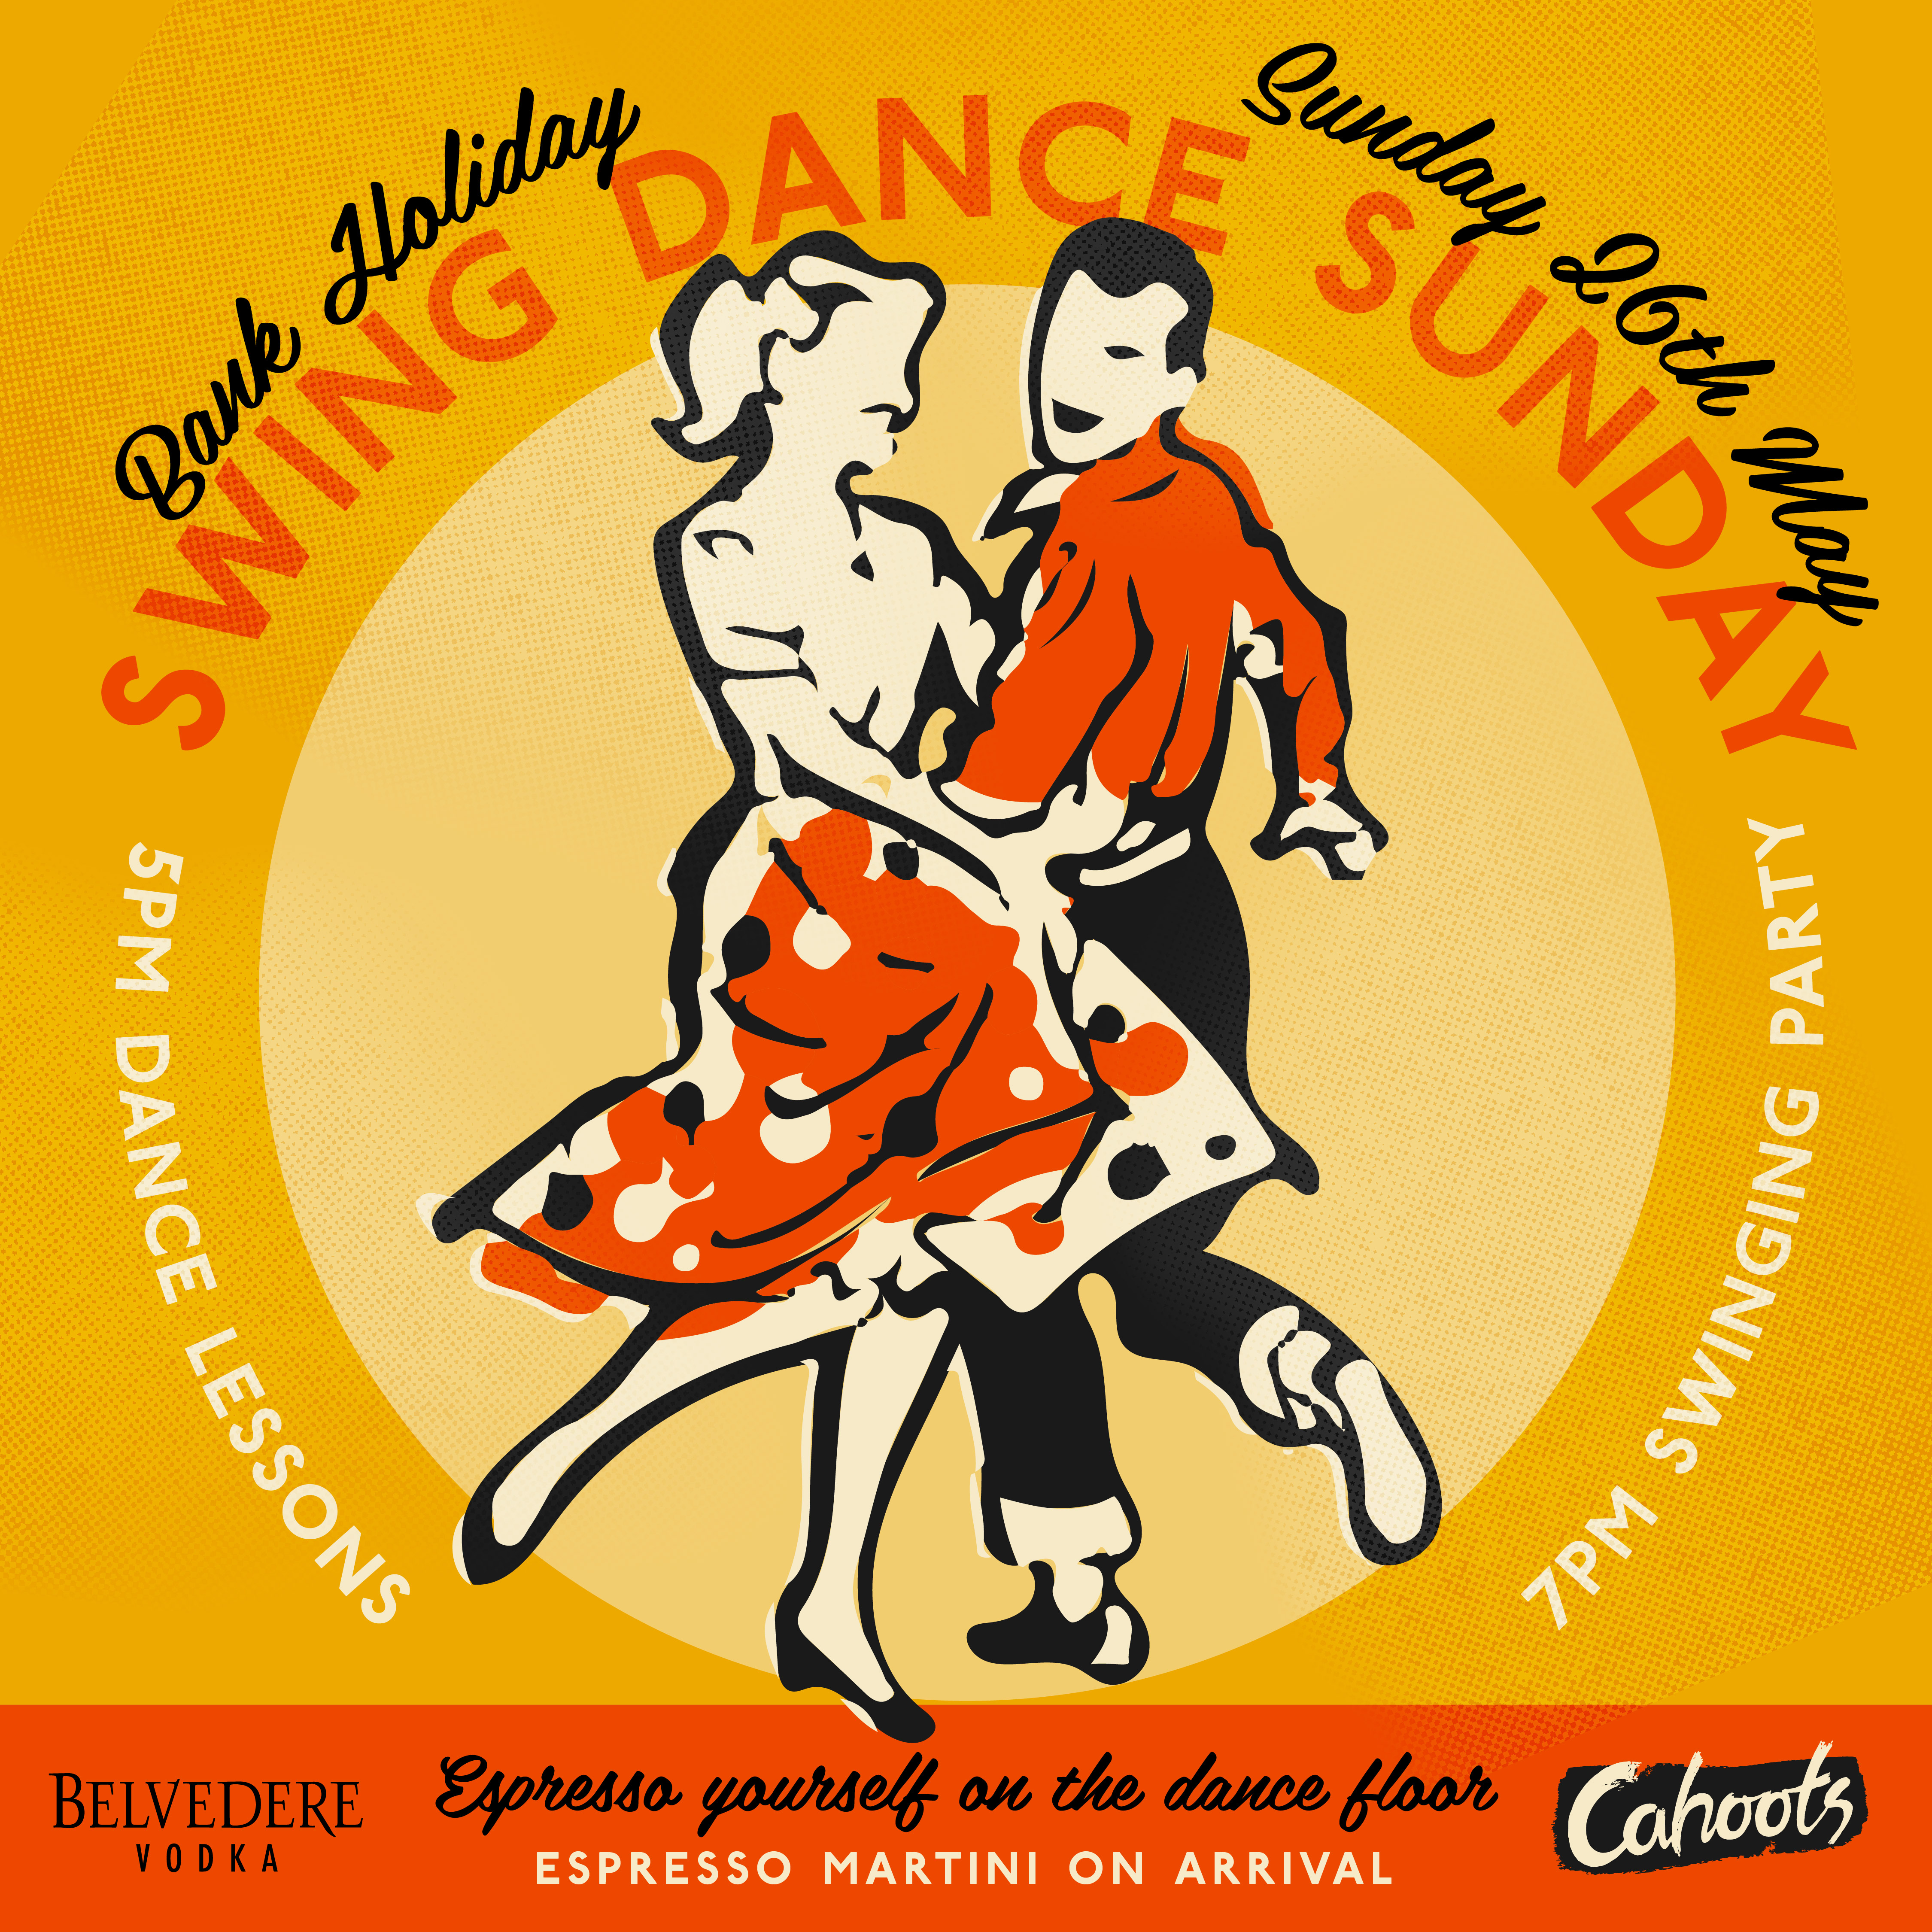 Swing Dance Sunday